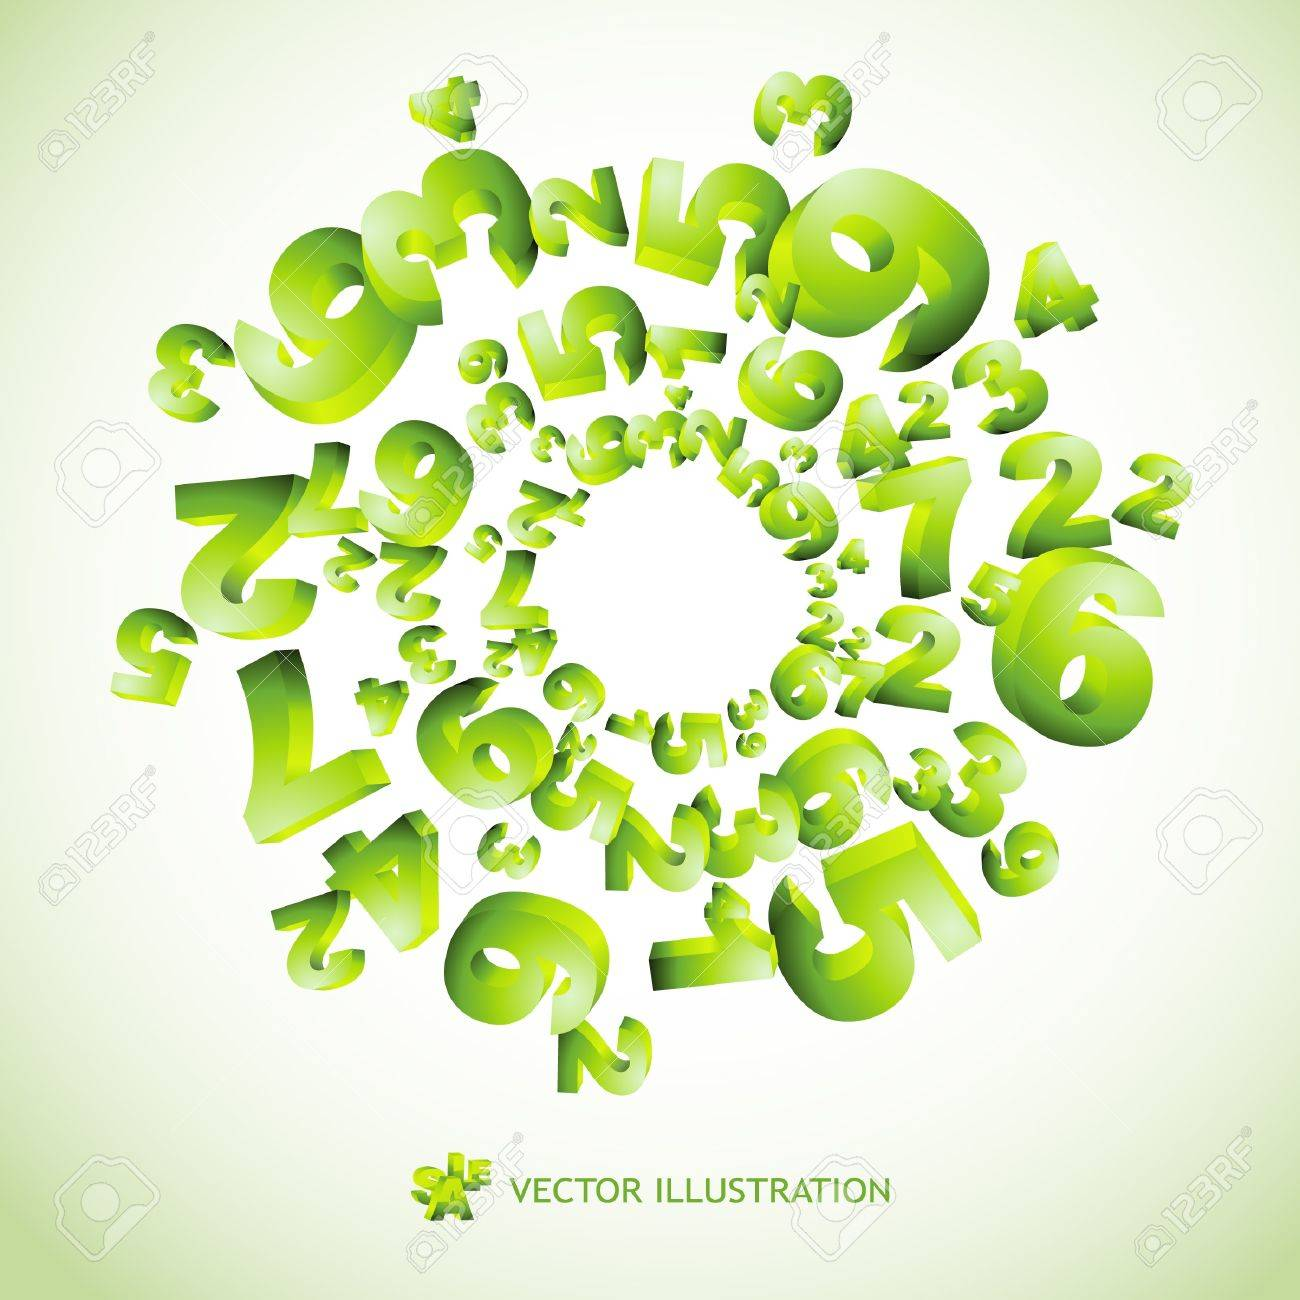 Abstract background with numbers. Stock Vector - 9409135